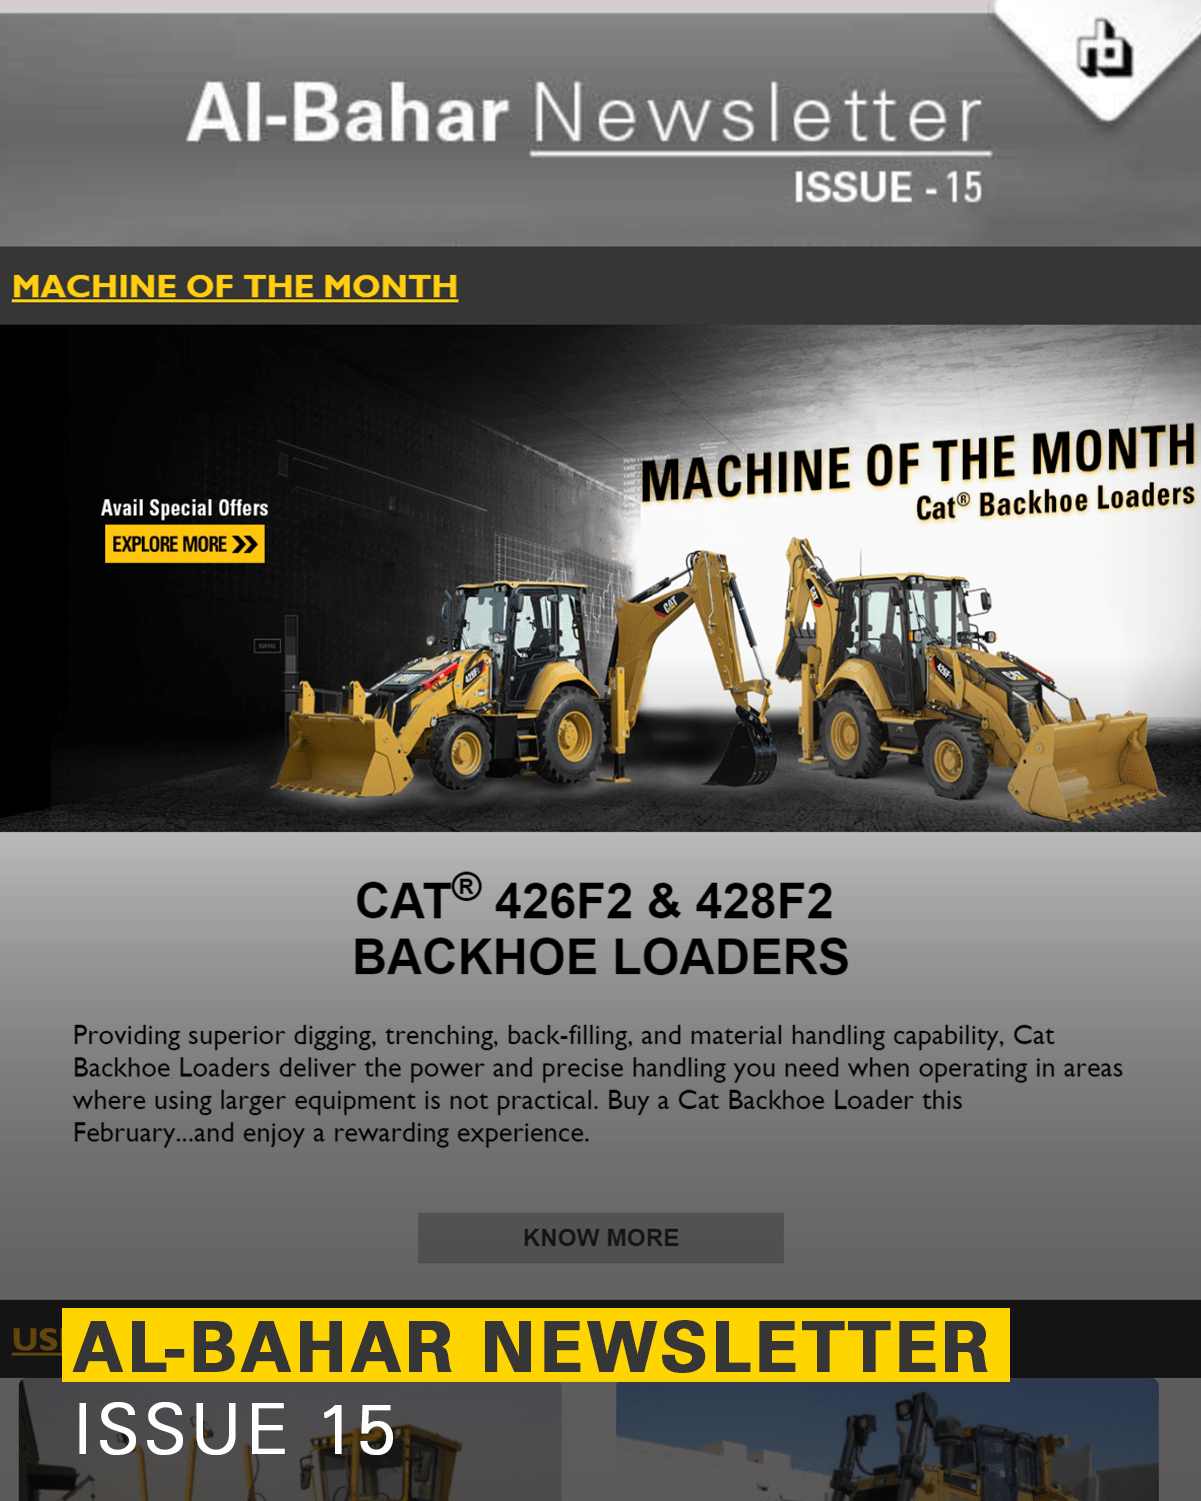 al-bahar-2018-newsletter-issue-15